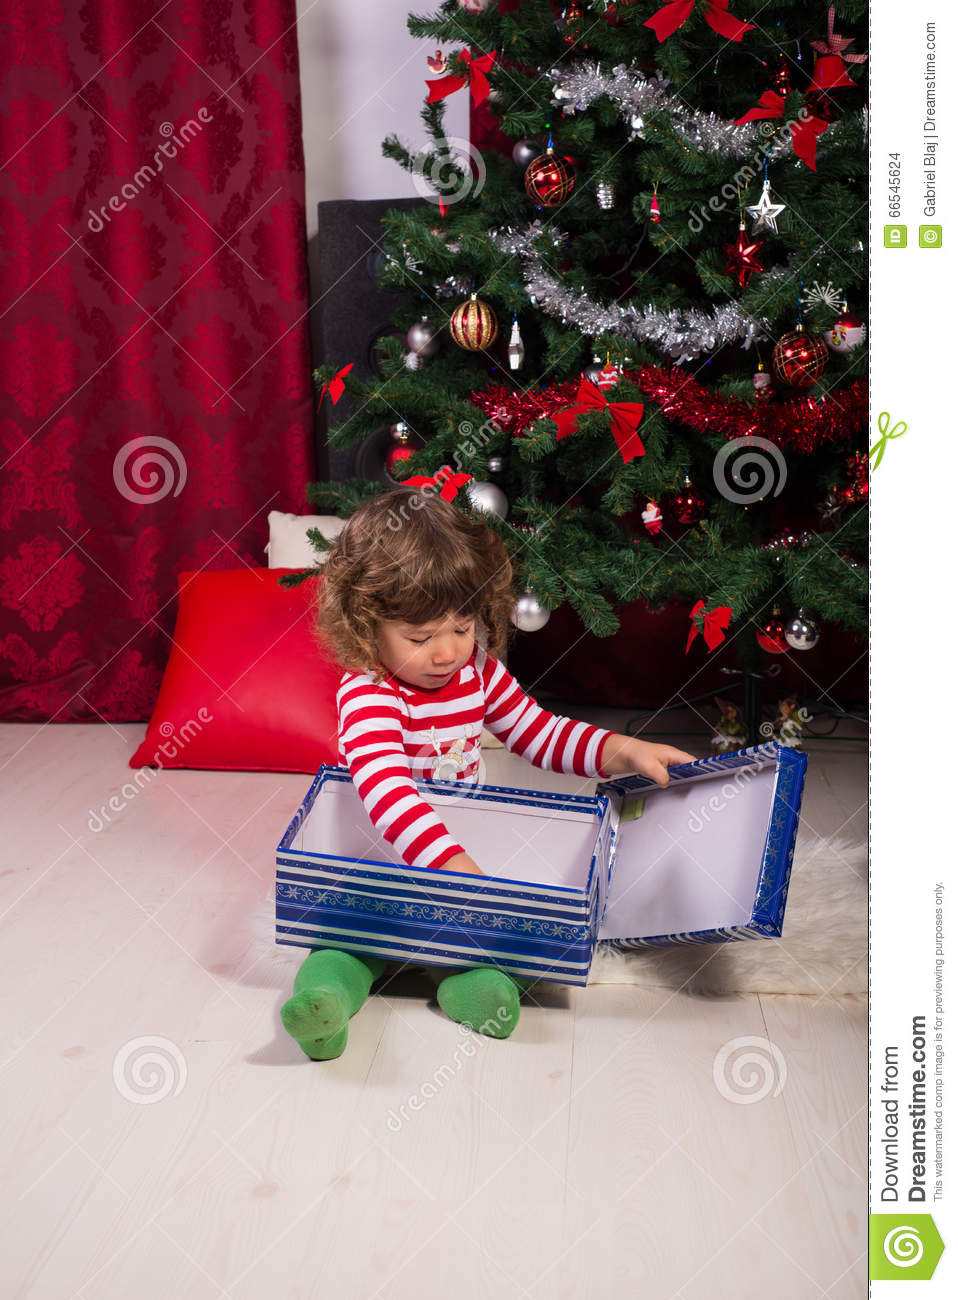 Toddler Opening Christmas Gifts Stock Photo Image Of Caucasian